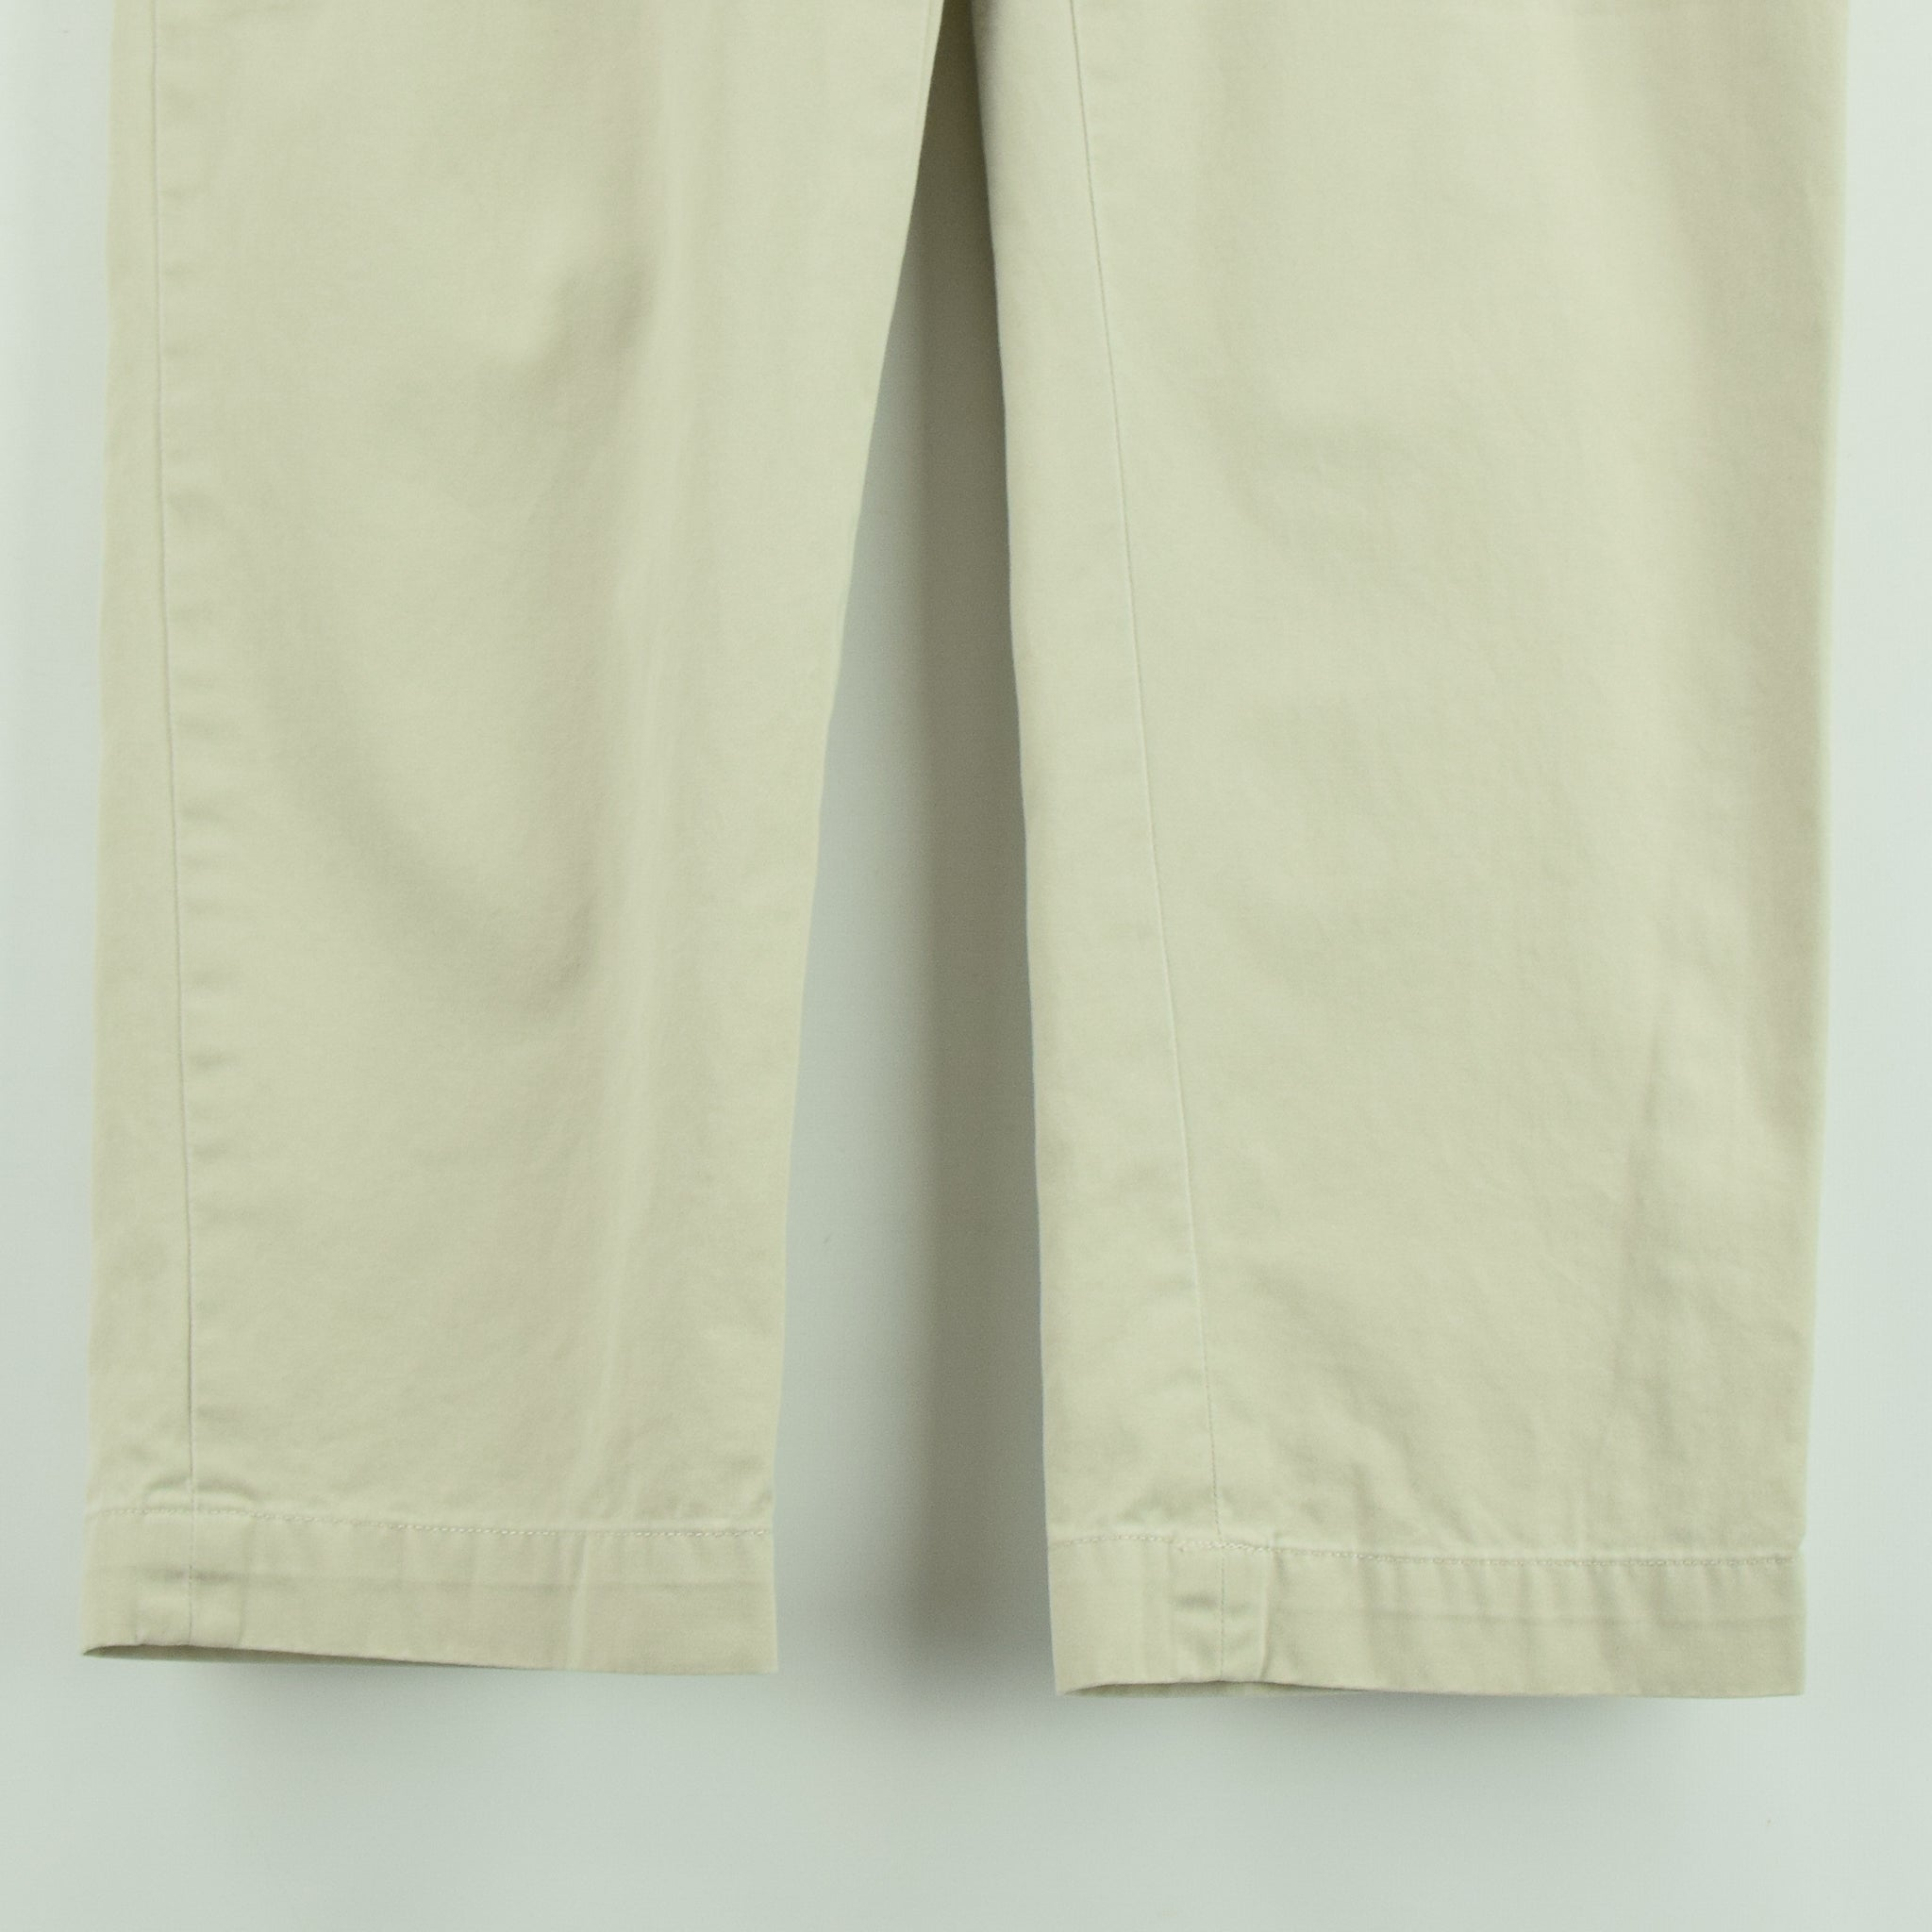 Vintage Ralph Lauren Polo Ethan Pant Chinos Pleated Front Trousers 32 W 28 L front hem